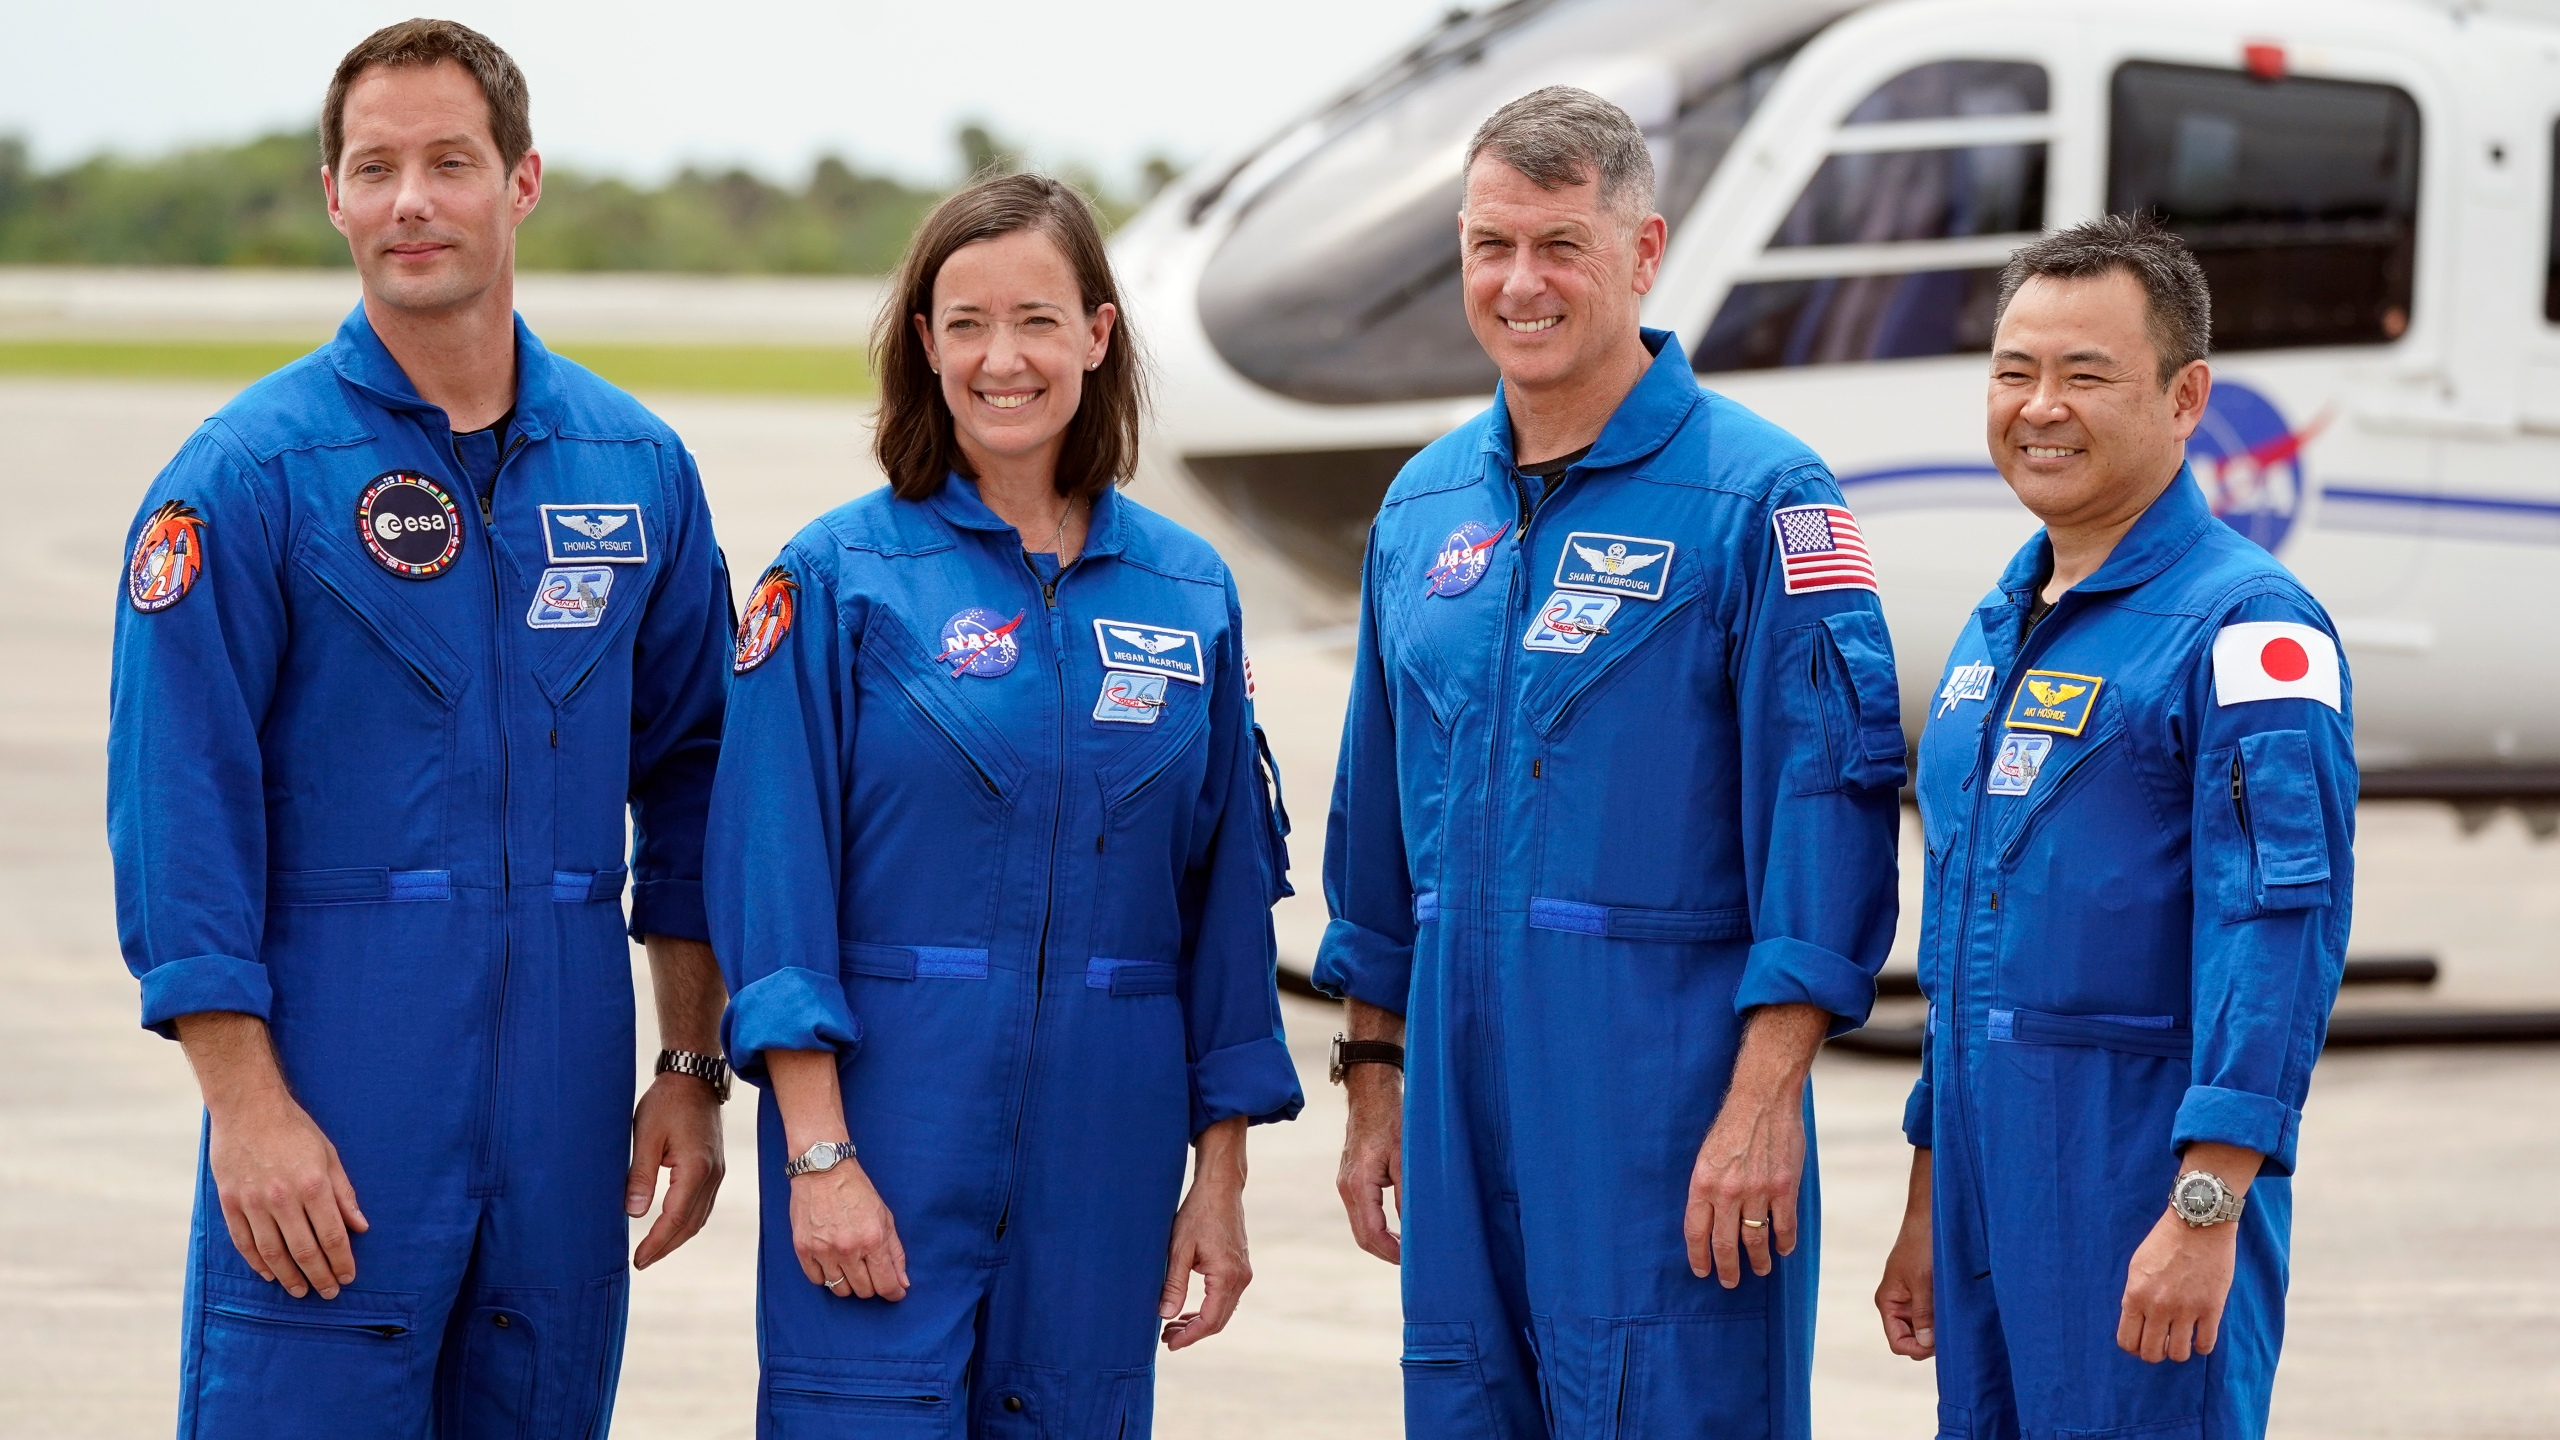 SpaceX Crew 2 members, from left, European Space Agency astronaut Thomas Pesquet, NASA astronauts Megan McArthur and Shane Kimbrough and Japan Aerospace Exploration Agency astronaut Akihiko Hoshide gather at the Kennedy Space Center in Cape Canaveral, Florida, Friday, April 16, 2021 to prepare for a mission to the International Space Station. The launch is targeted for April 22. (AP Photo/John Raoux)